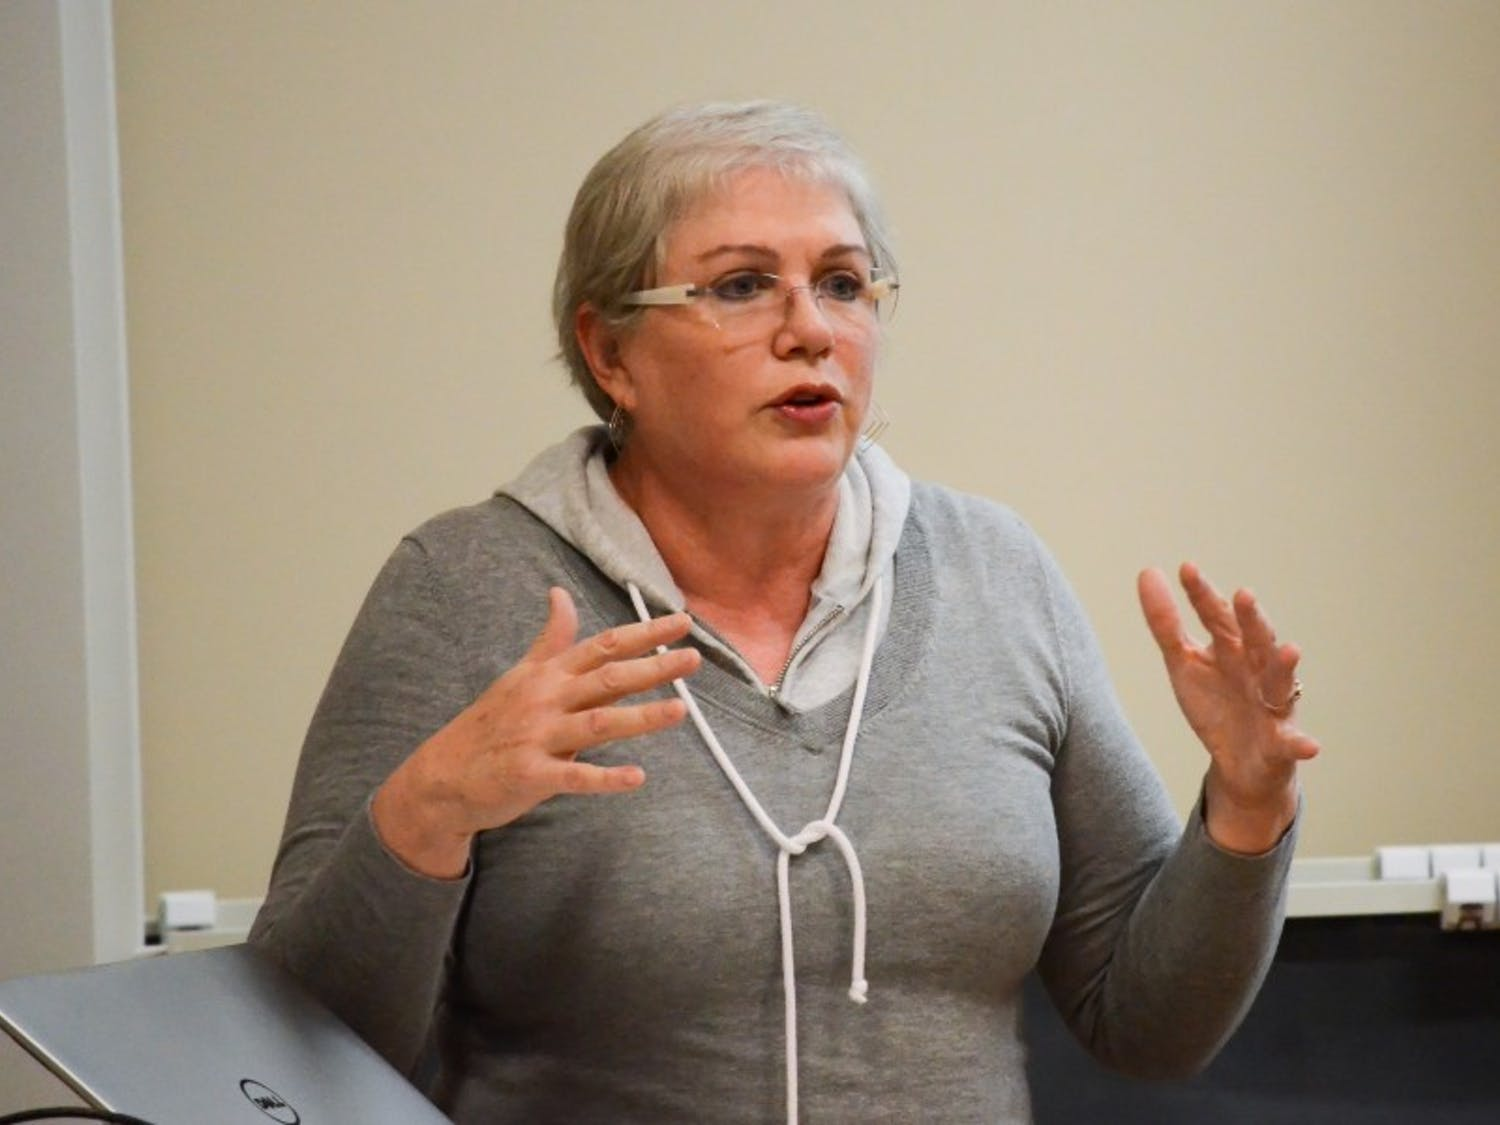 """Former Saturday Night Live writer and cast member Julia Sweeney shared pieces from her monologue, """"Letting Go of God,"""" that details her decision to become an atheist."""